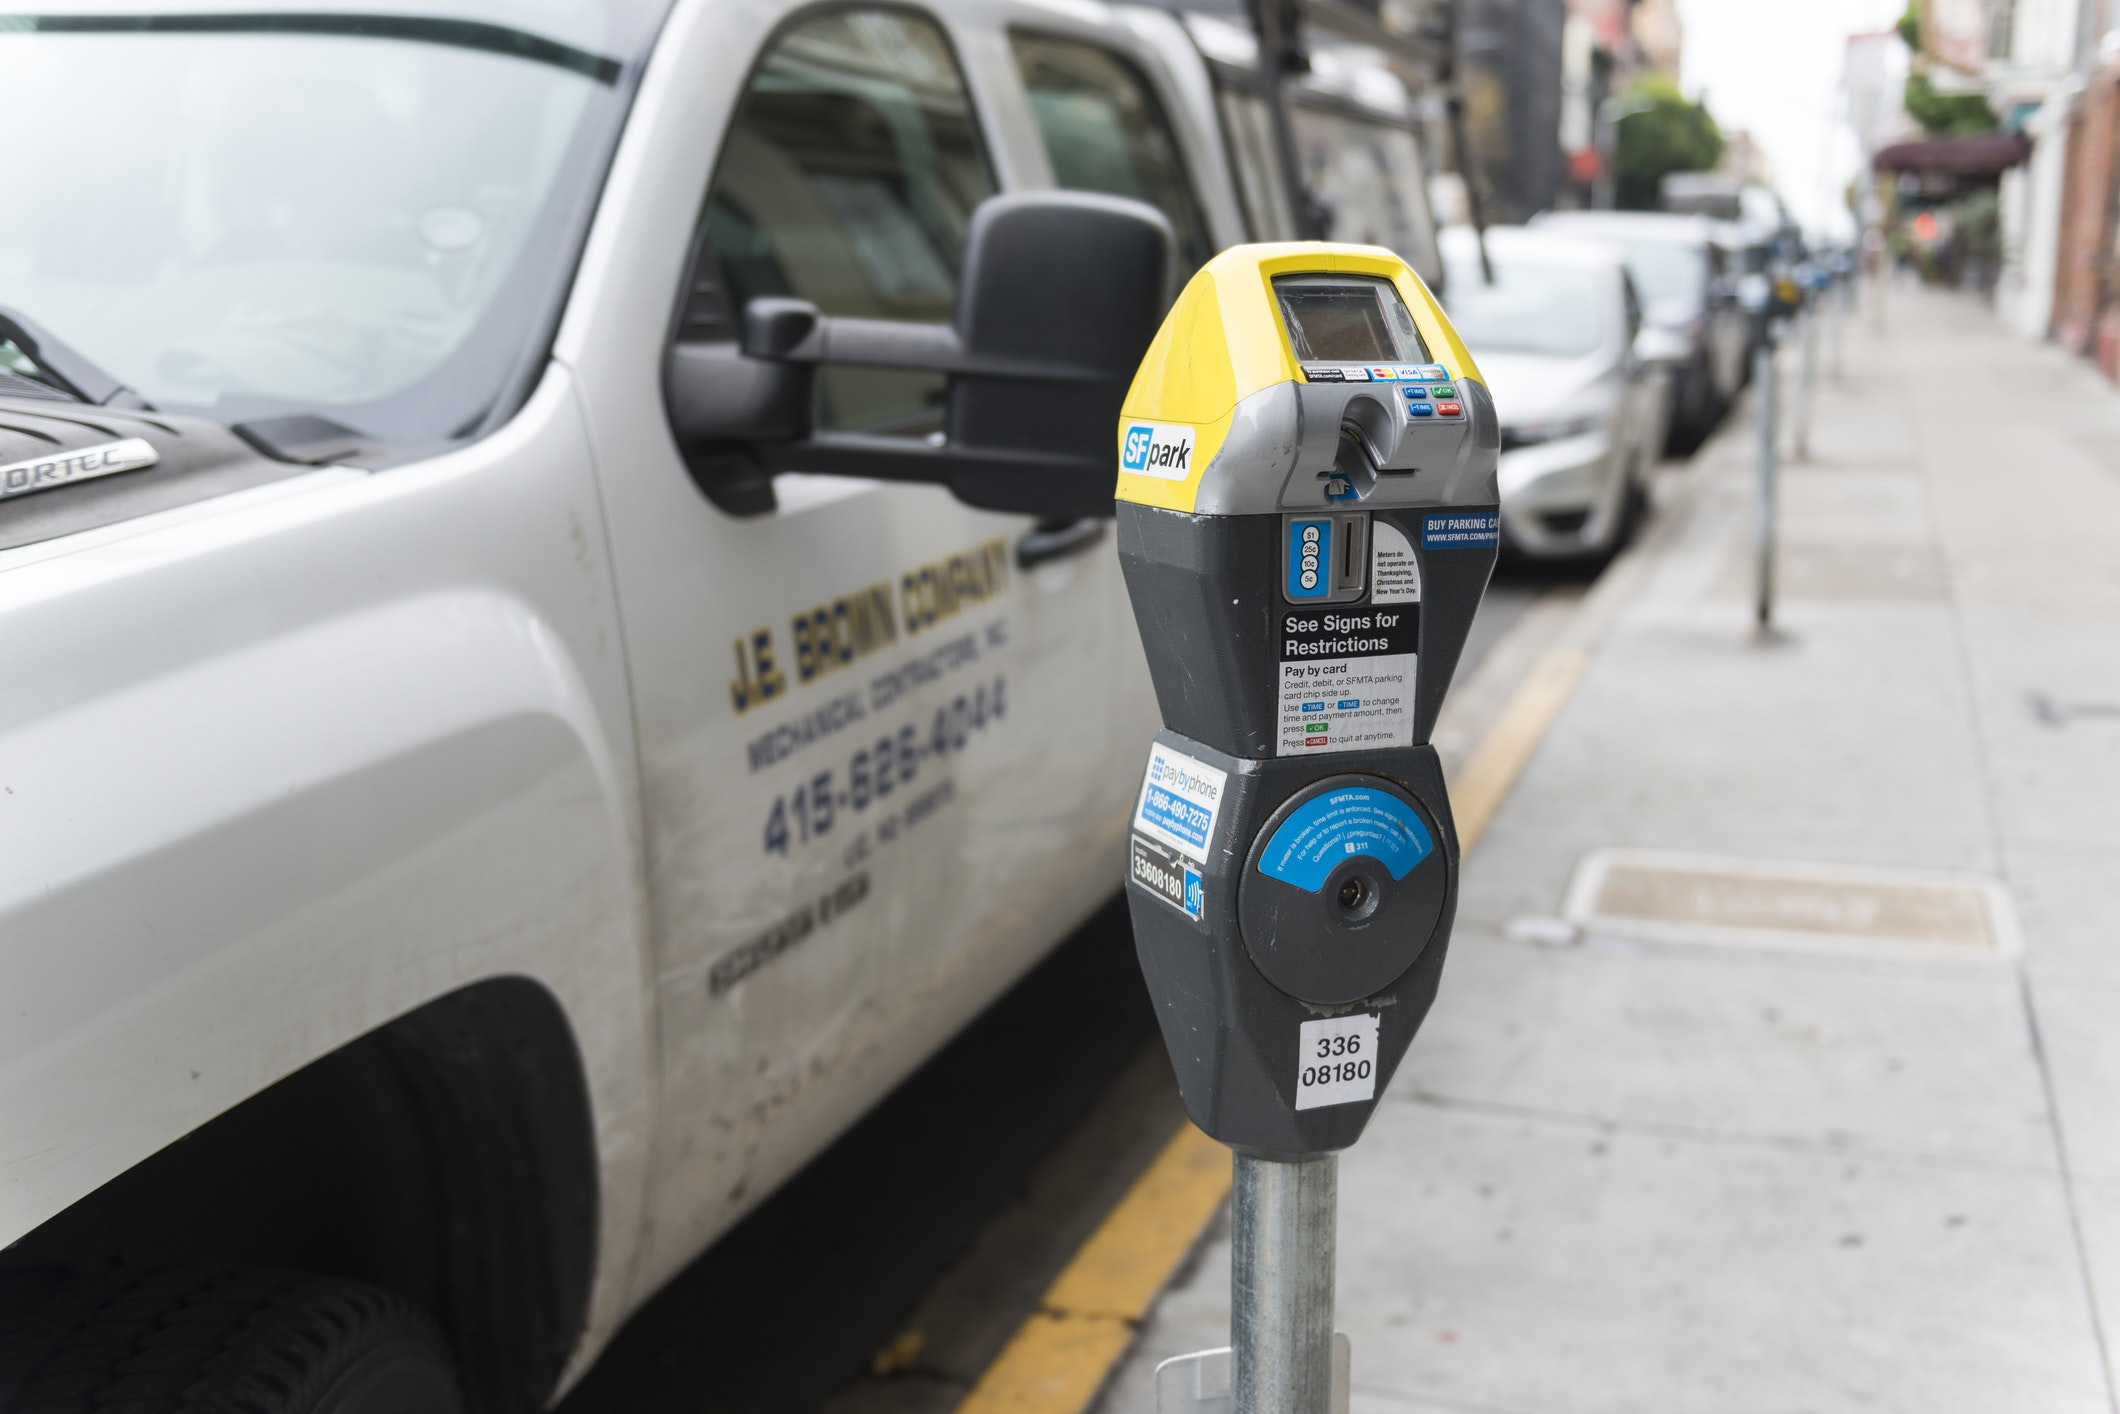 Nearly Half of SF Drivers Support SFMTA Plan for On Demand Meter Pricing